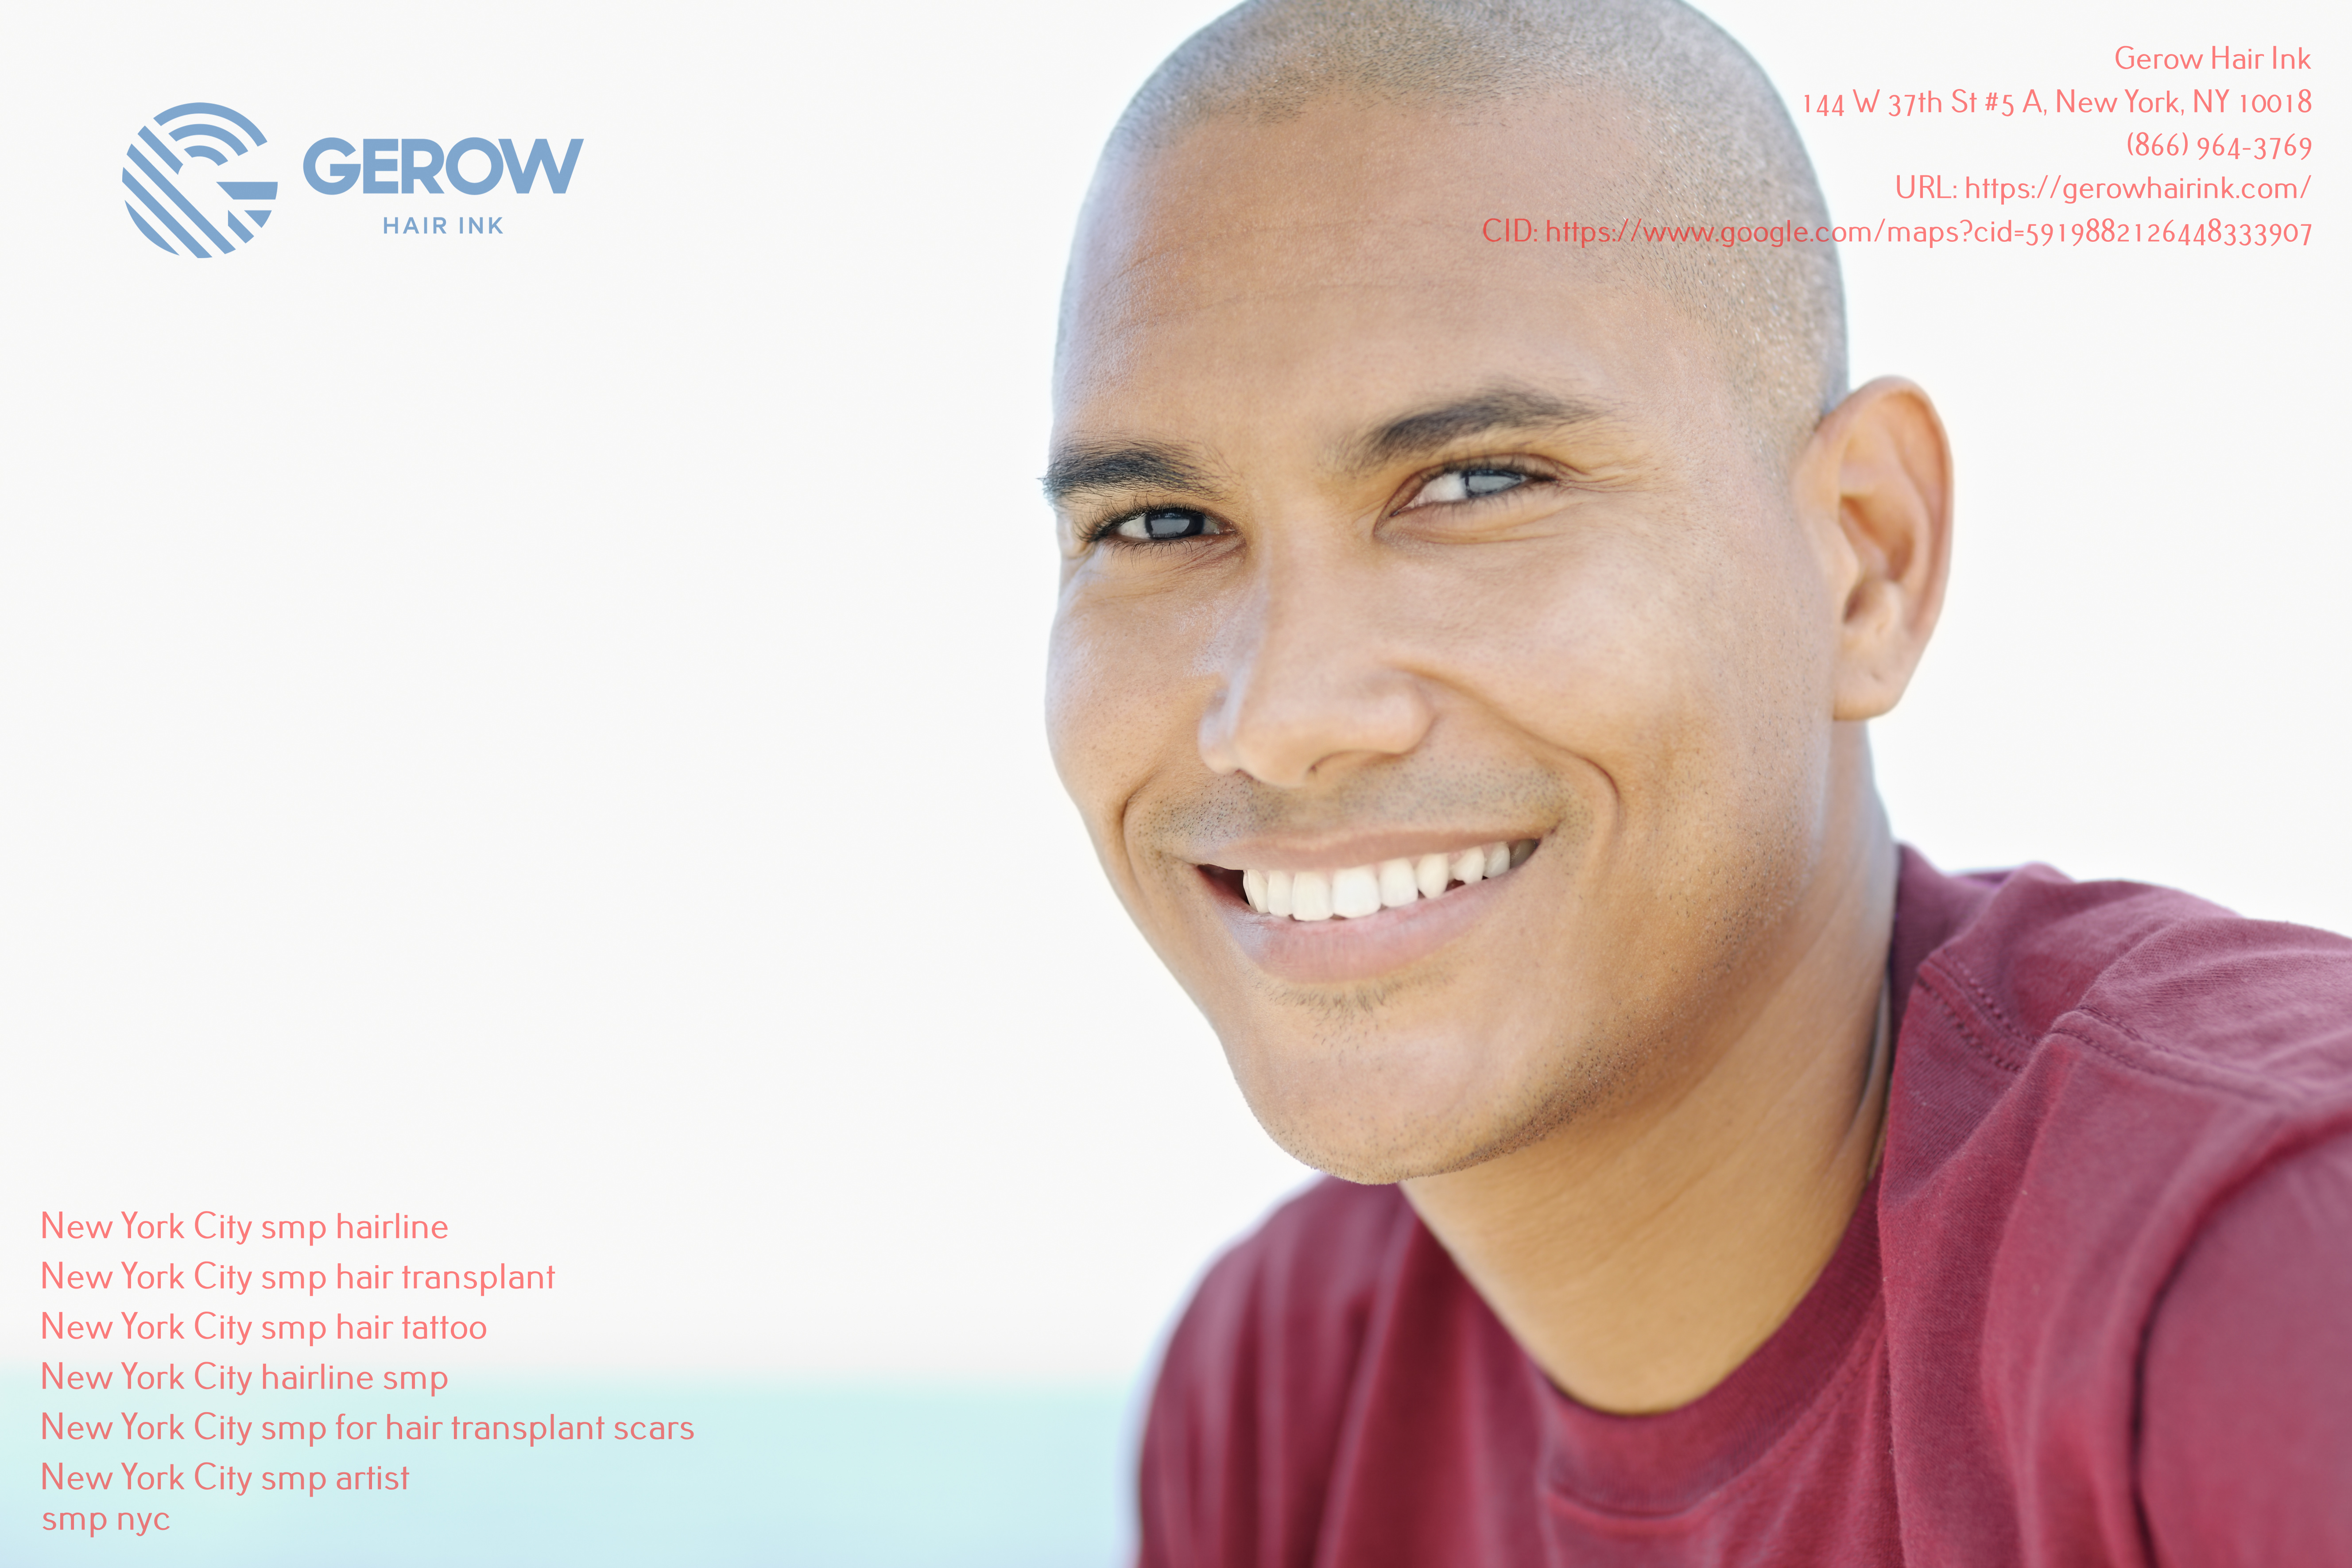 Gerow Hair Ink is dedicated to helping the people in New York City recover from hair loss or a hair transplant scar via SMP procedures